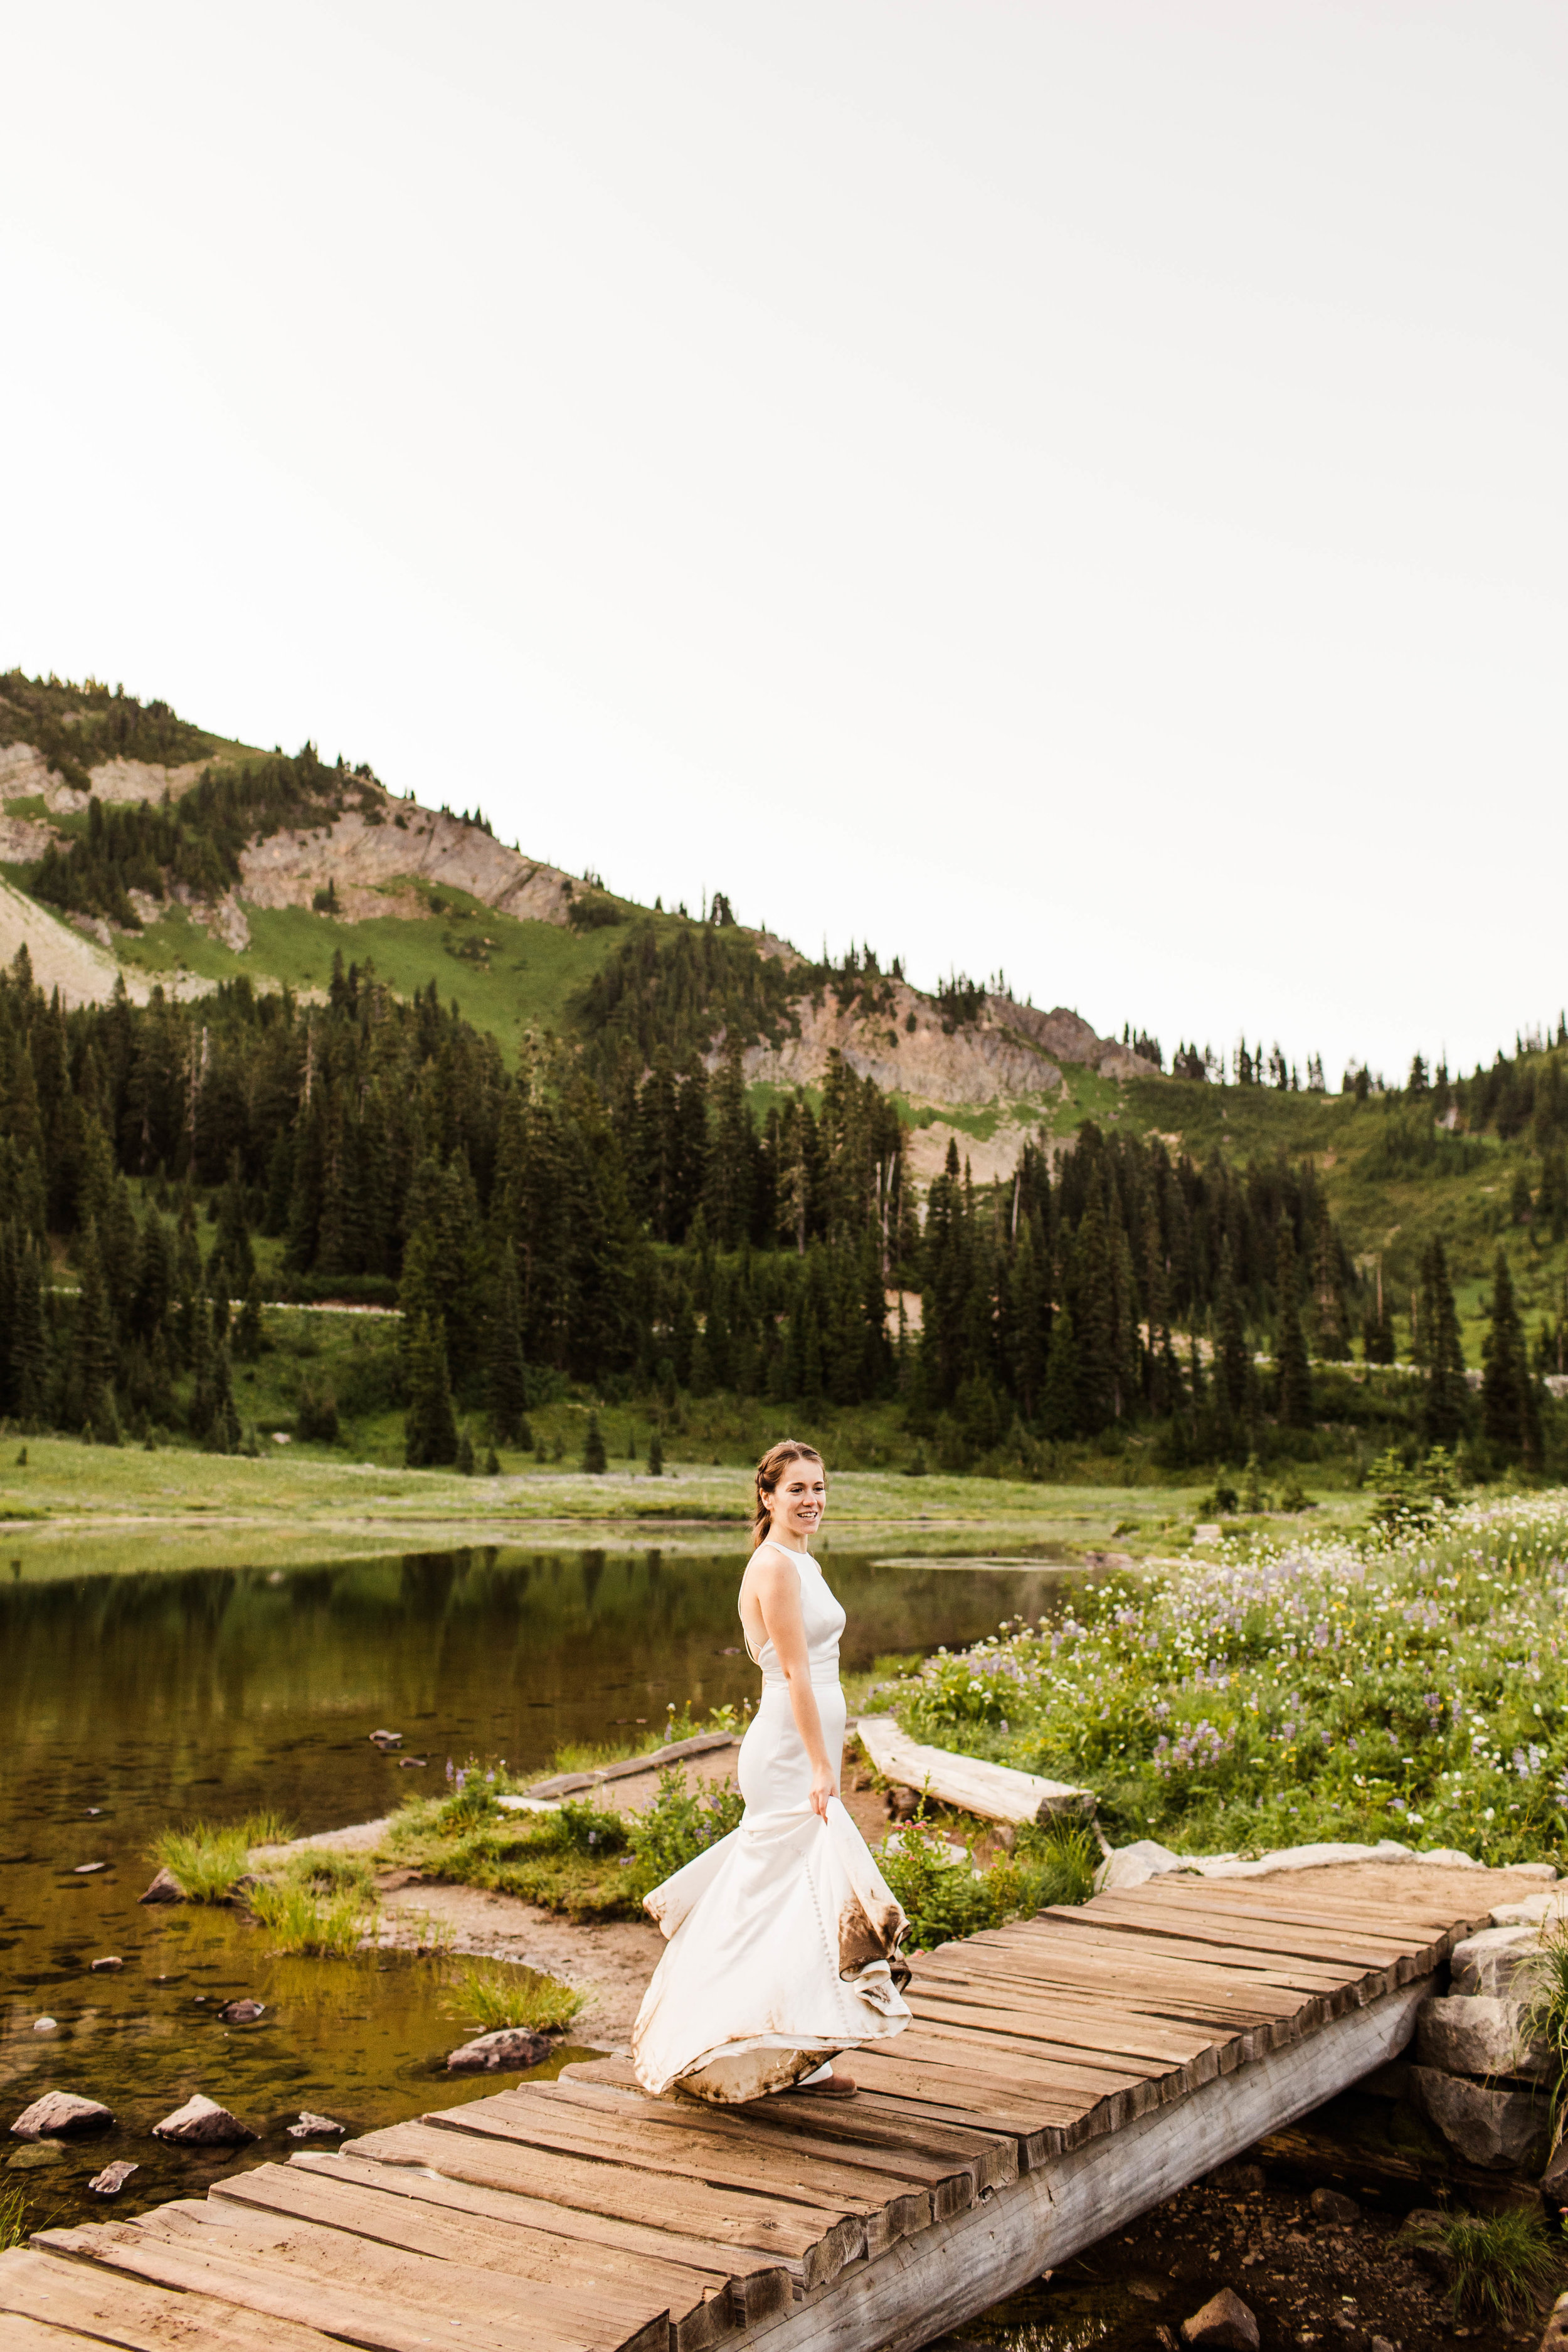 bridal photos during an adventurous national park elopement in Mount Rainier | Washington state elopement and adventure wedding photographers